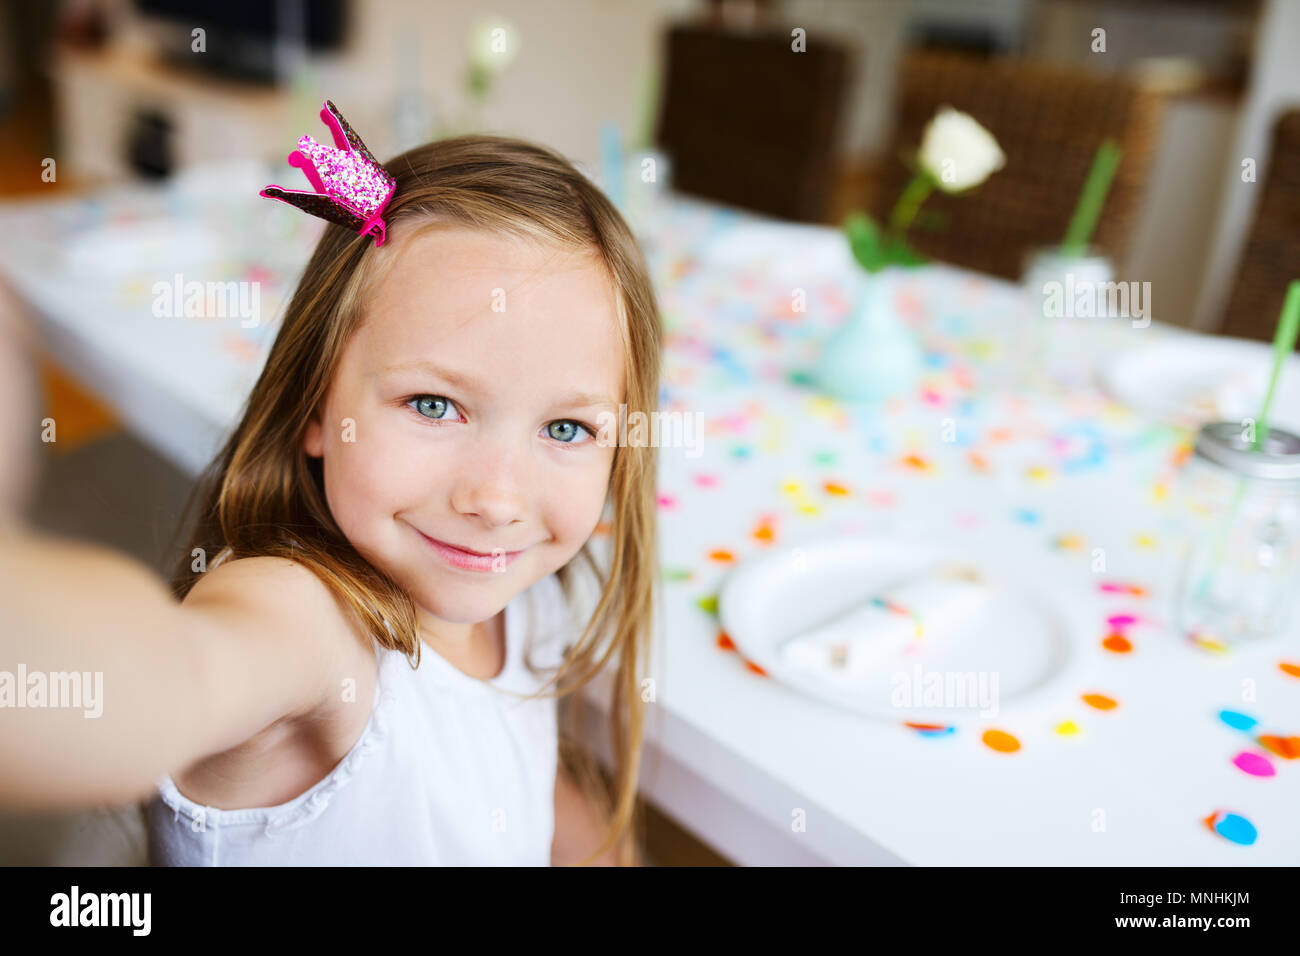 Adorable petite fille princesse avec couronne à kids Birthday party décisions selfies Photo Stock